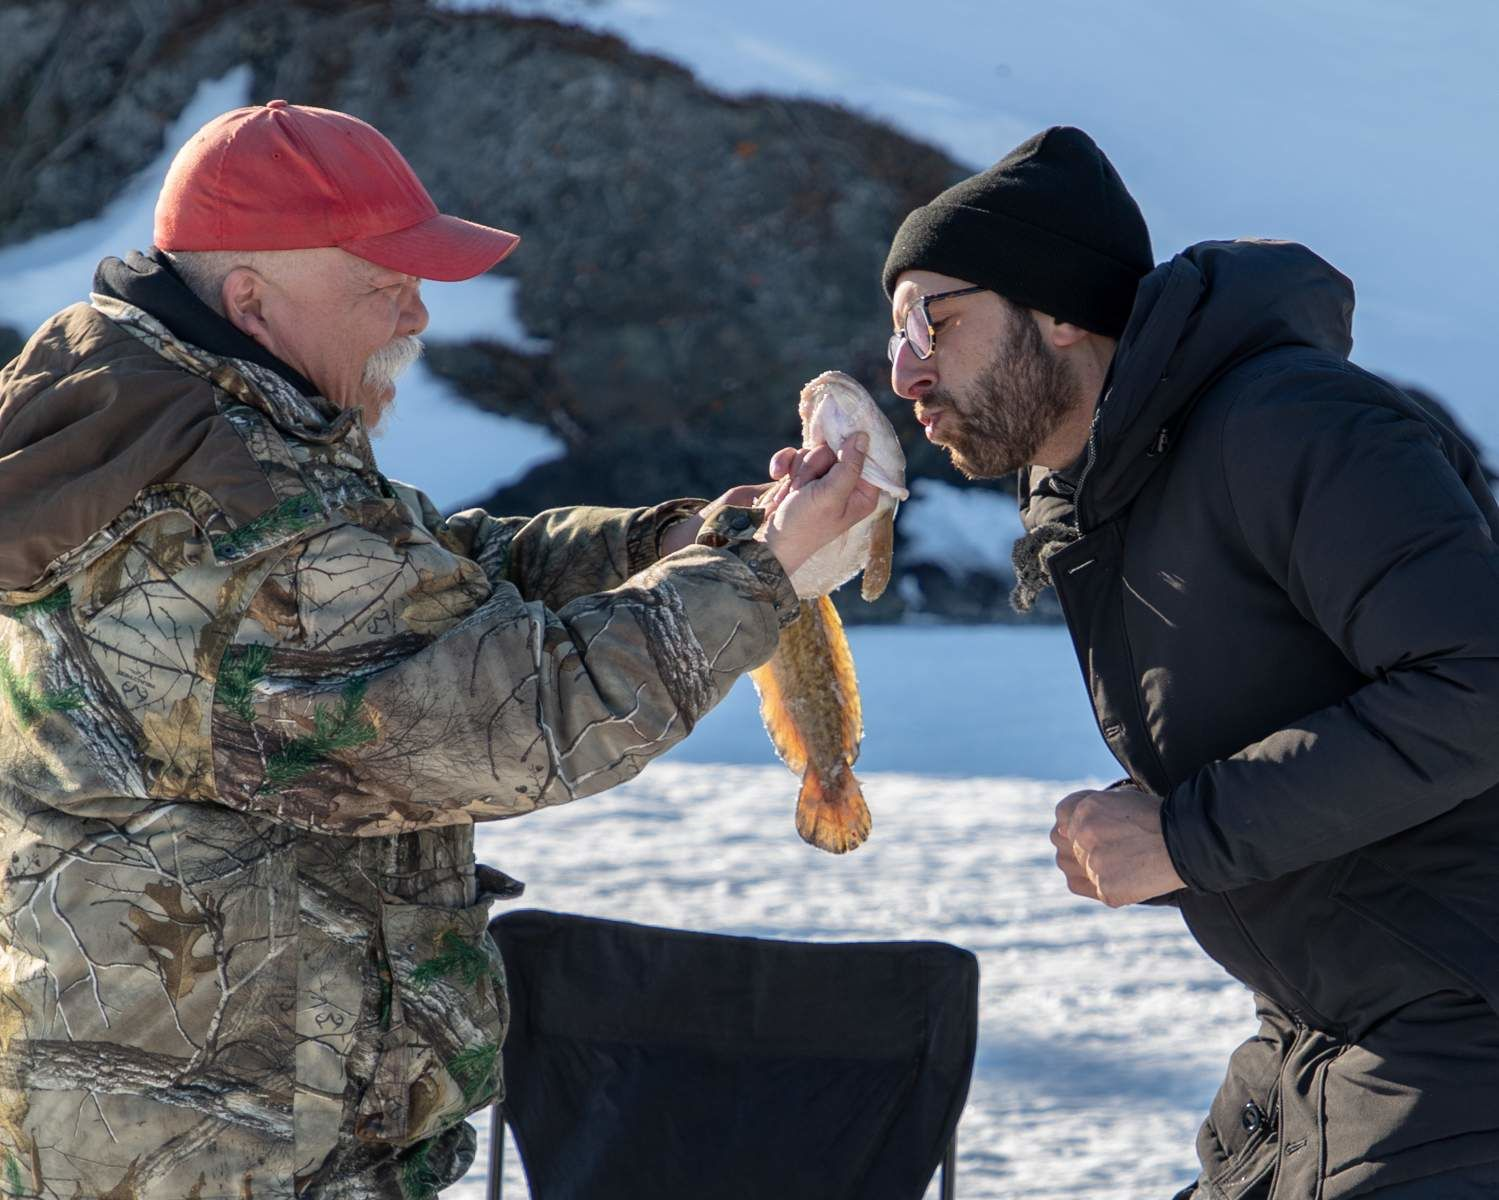 Michael and Randy, the Fish Whisperer in Yellowknife, Northwest Territories